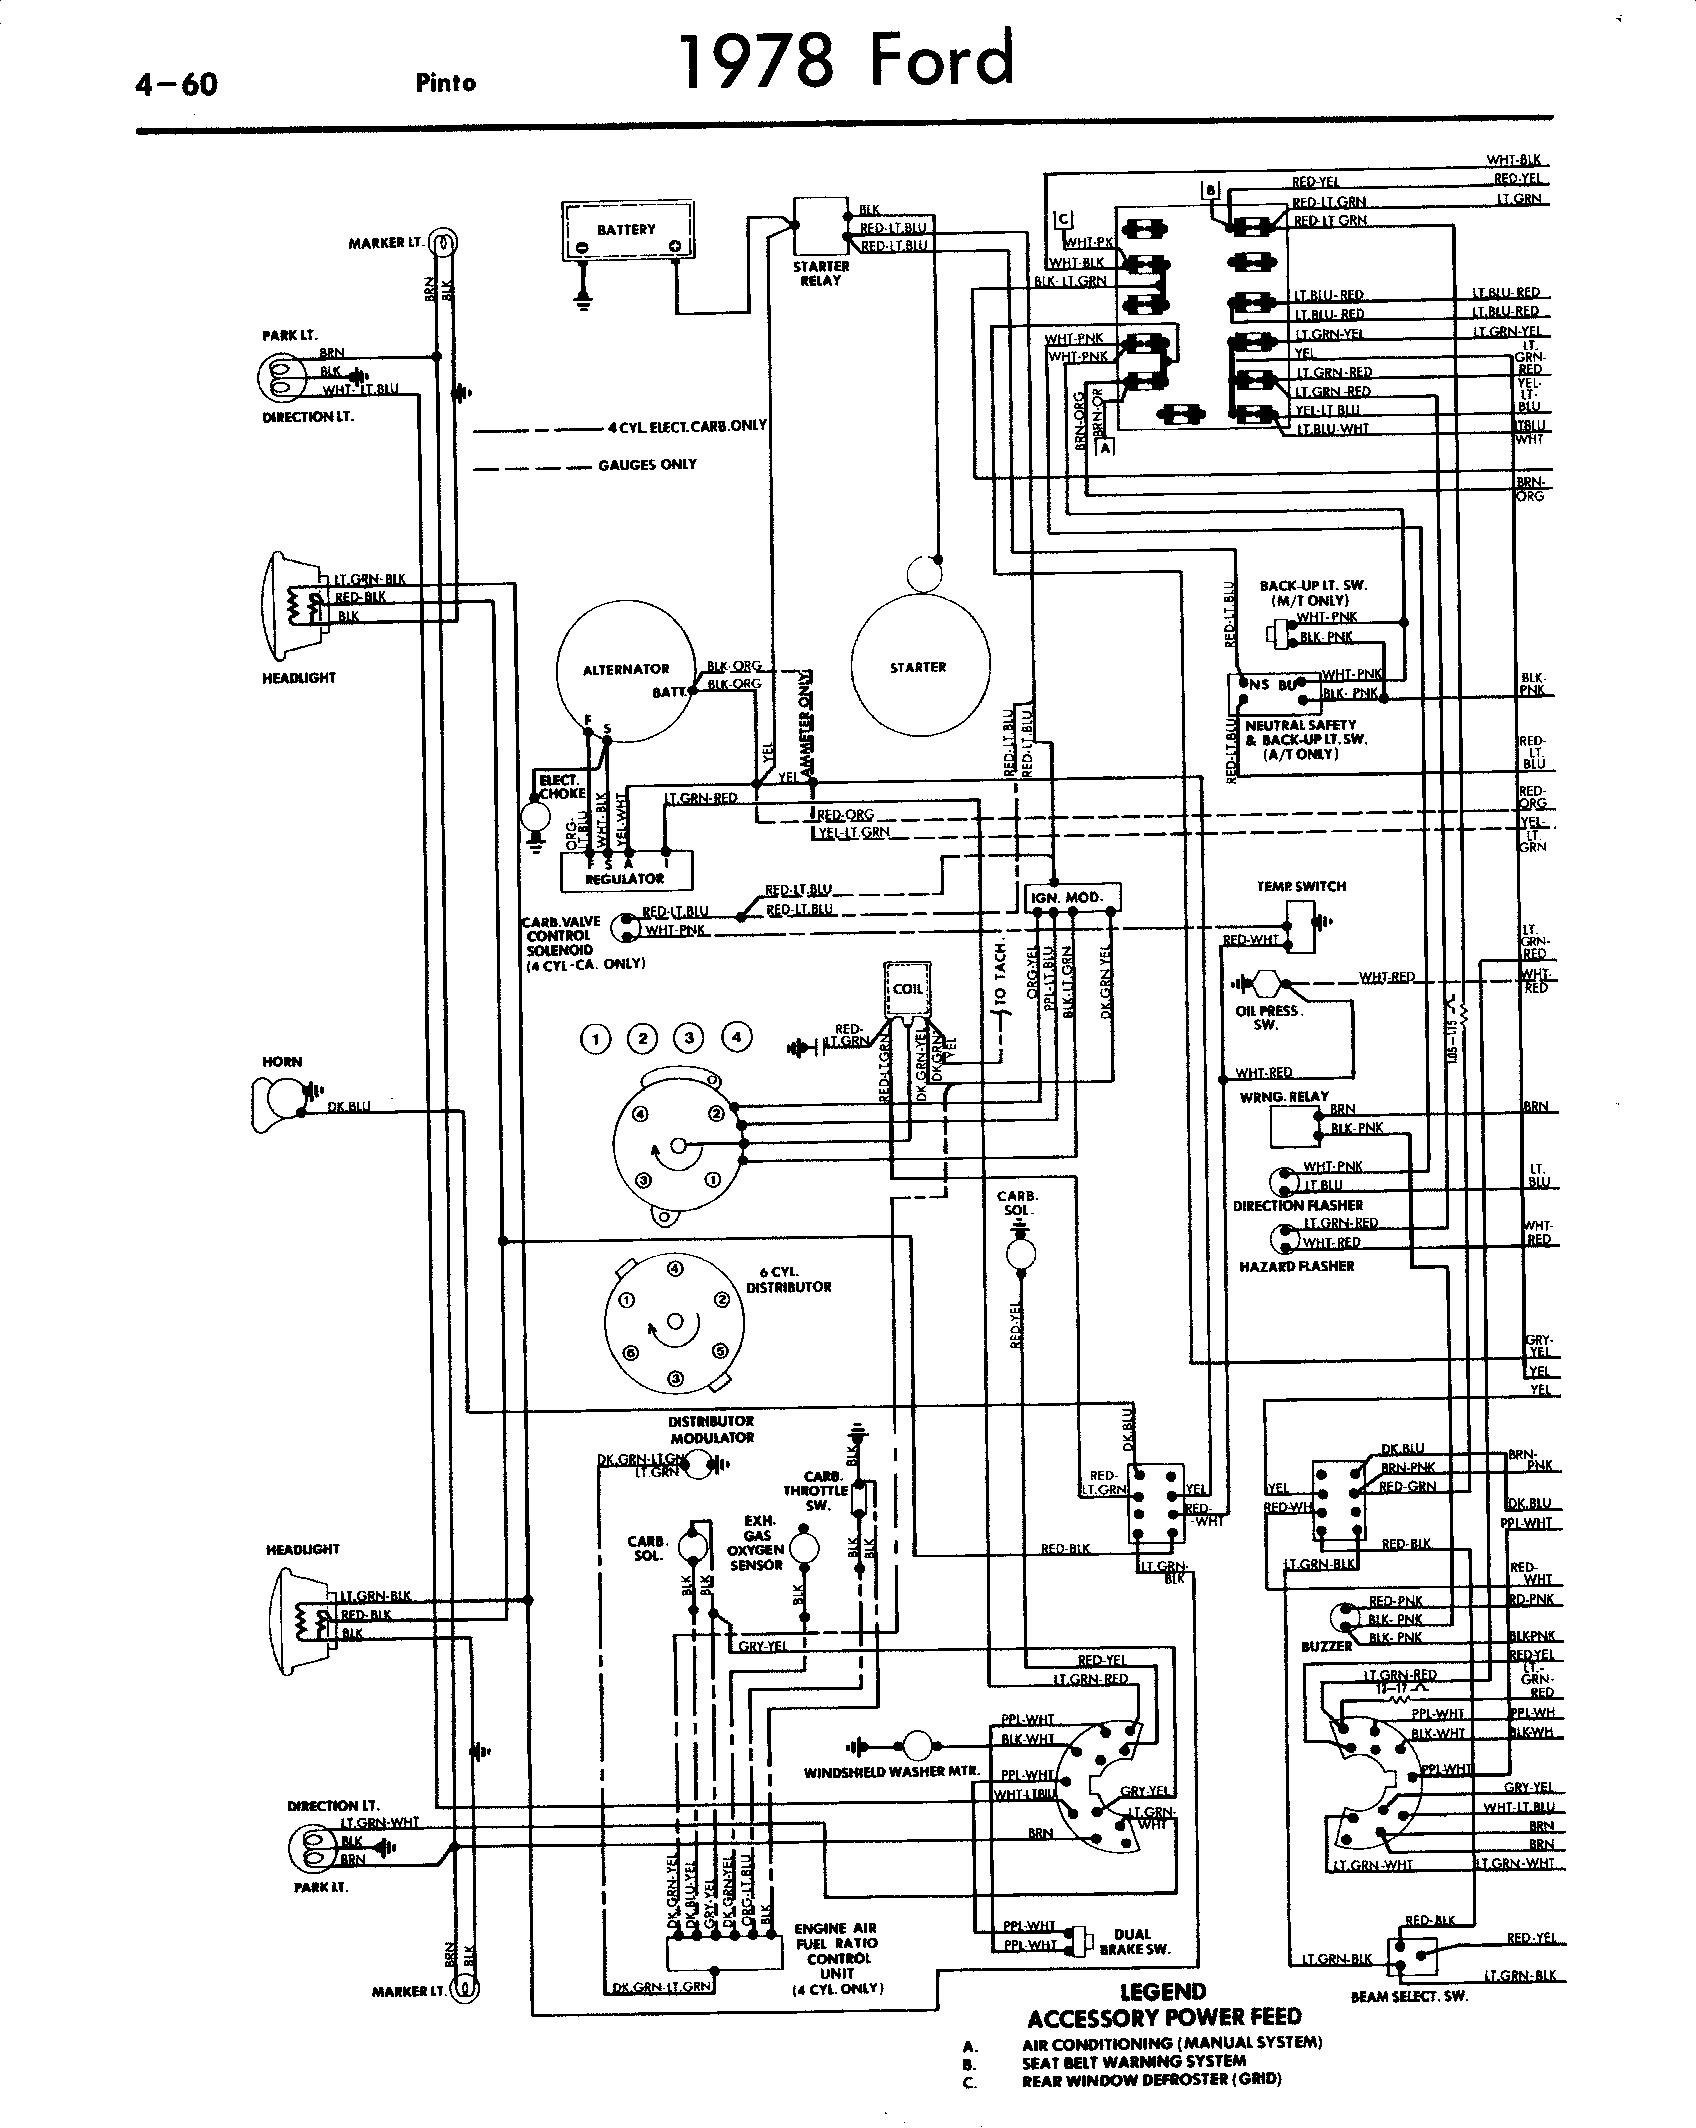 Ford 5 4 L Engine Diagram Wiring Library 3 4l Free Download 2 01 7 Wire Info